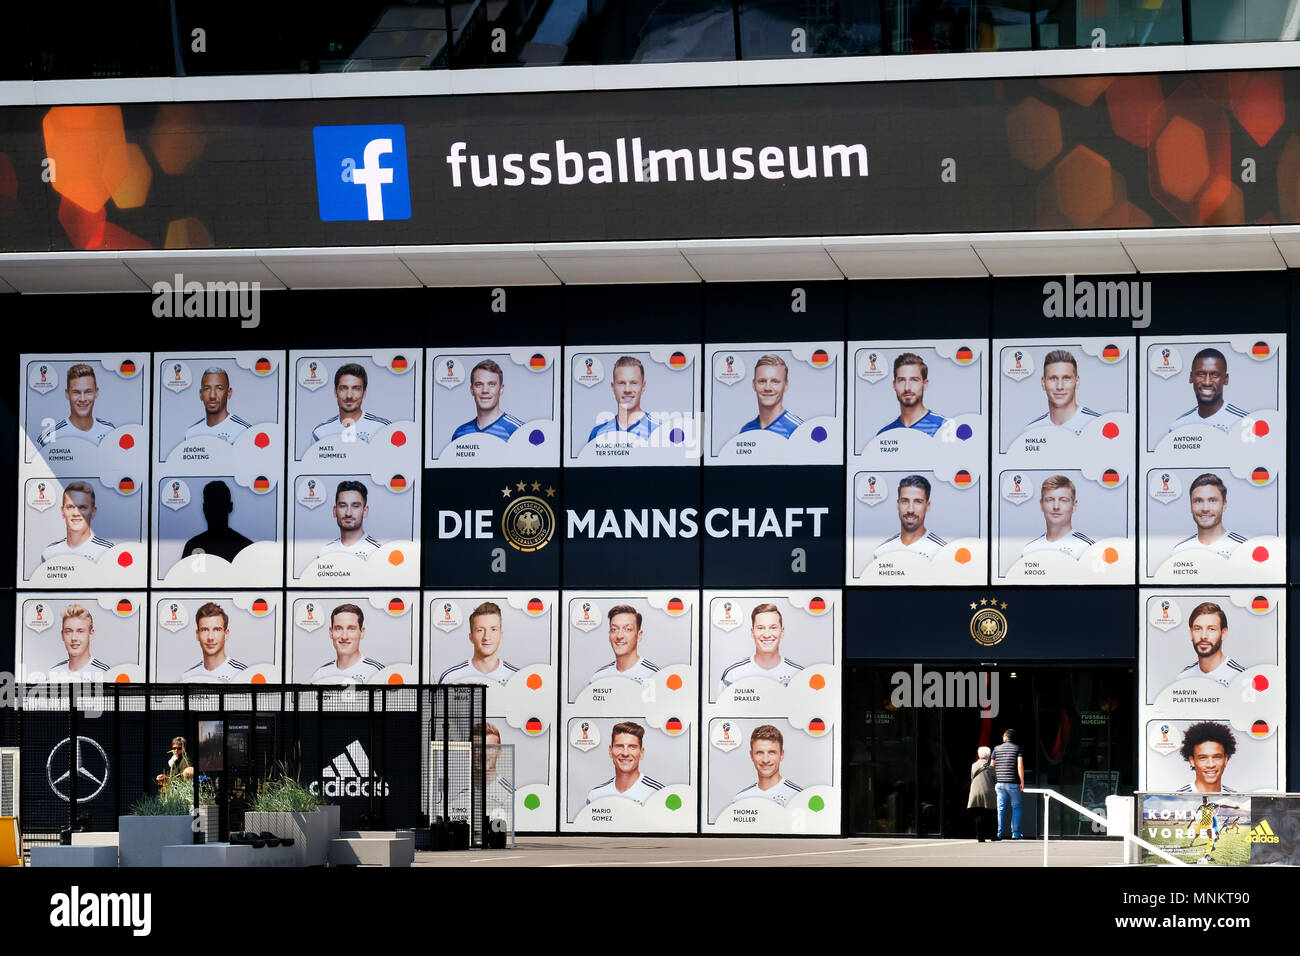 Portraits of players nominated by national coach Joachim Loew (Löw) of the provisional squad of the German national soccer team for the 2018 FIFA World Cup in Russia on the front of the German Football Museum in Dortmund, Germany on 18.5.2018 - Stock Image